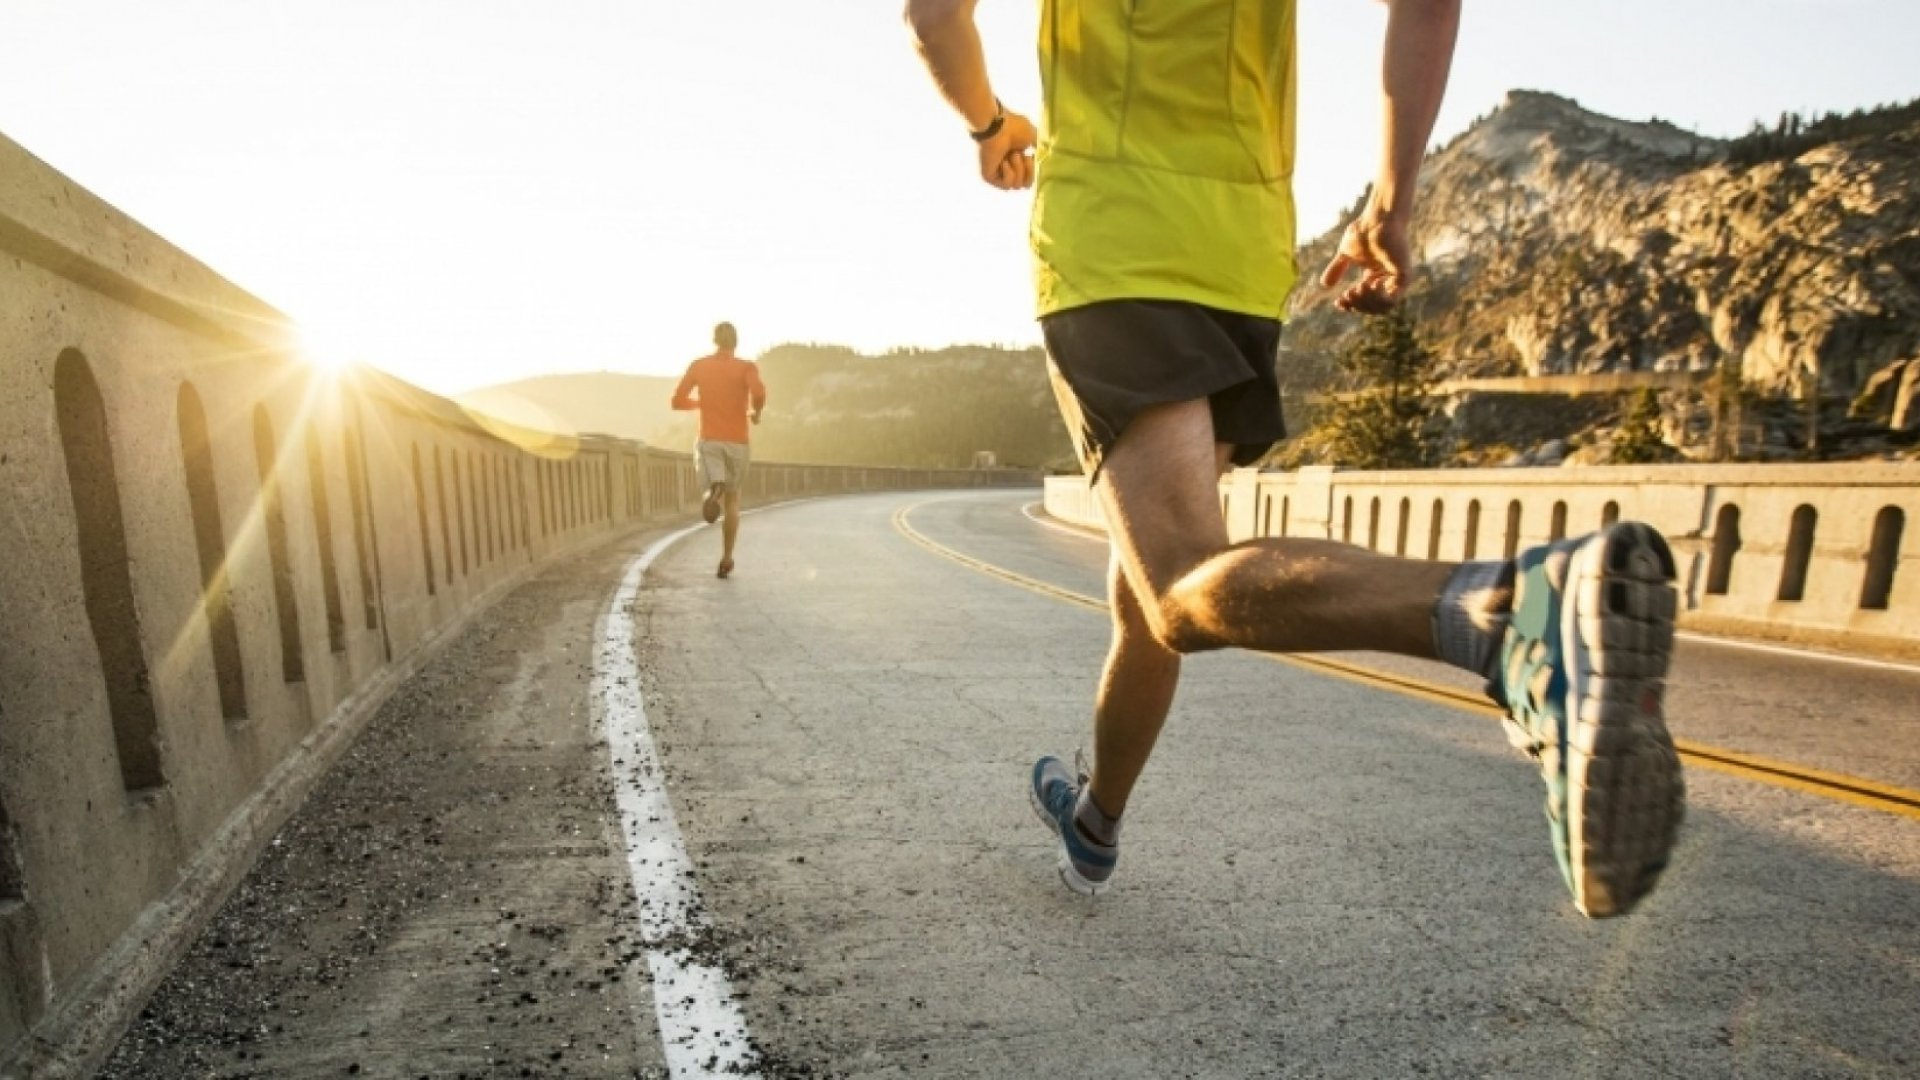 The Neuroscience of Why Running Clears the Mind